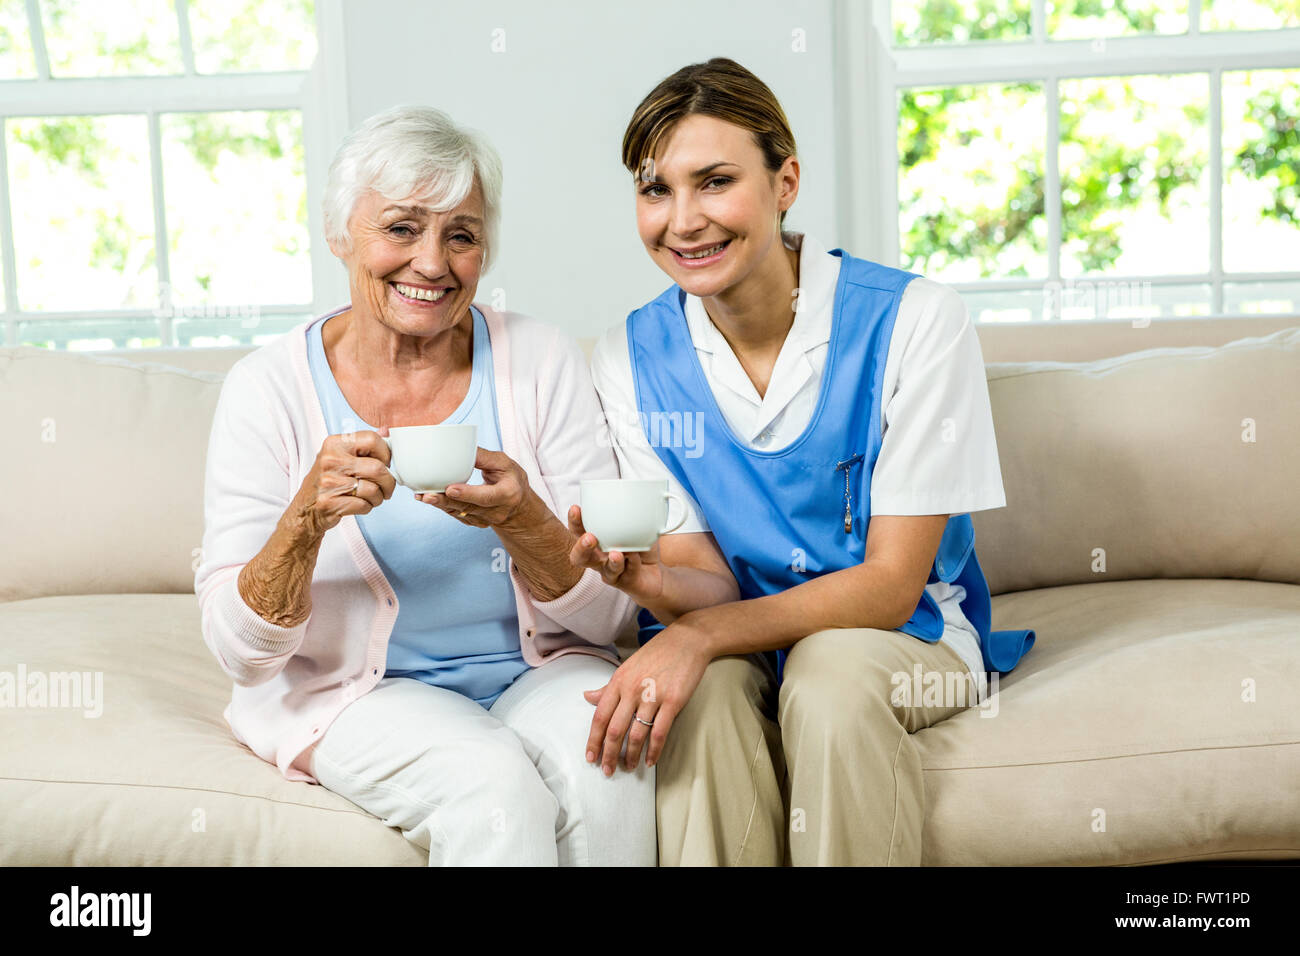 Portrait of smiling nurse with senior woman - Stock Image